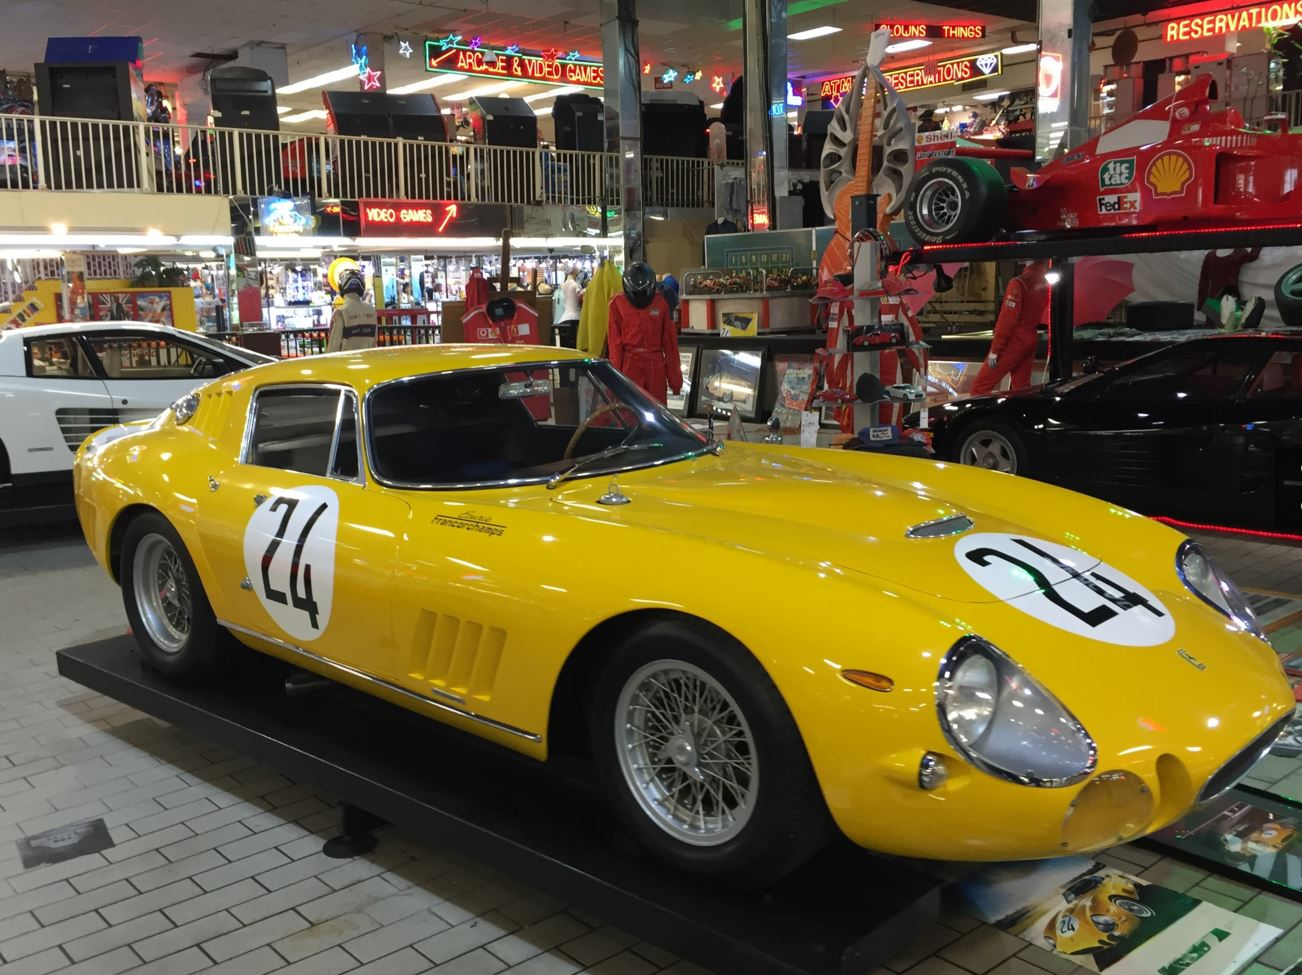 Rare Extremely Valuable Ferrari On Display At Swap Shop